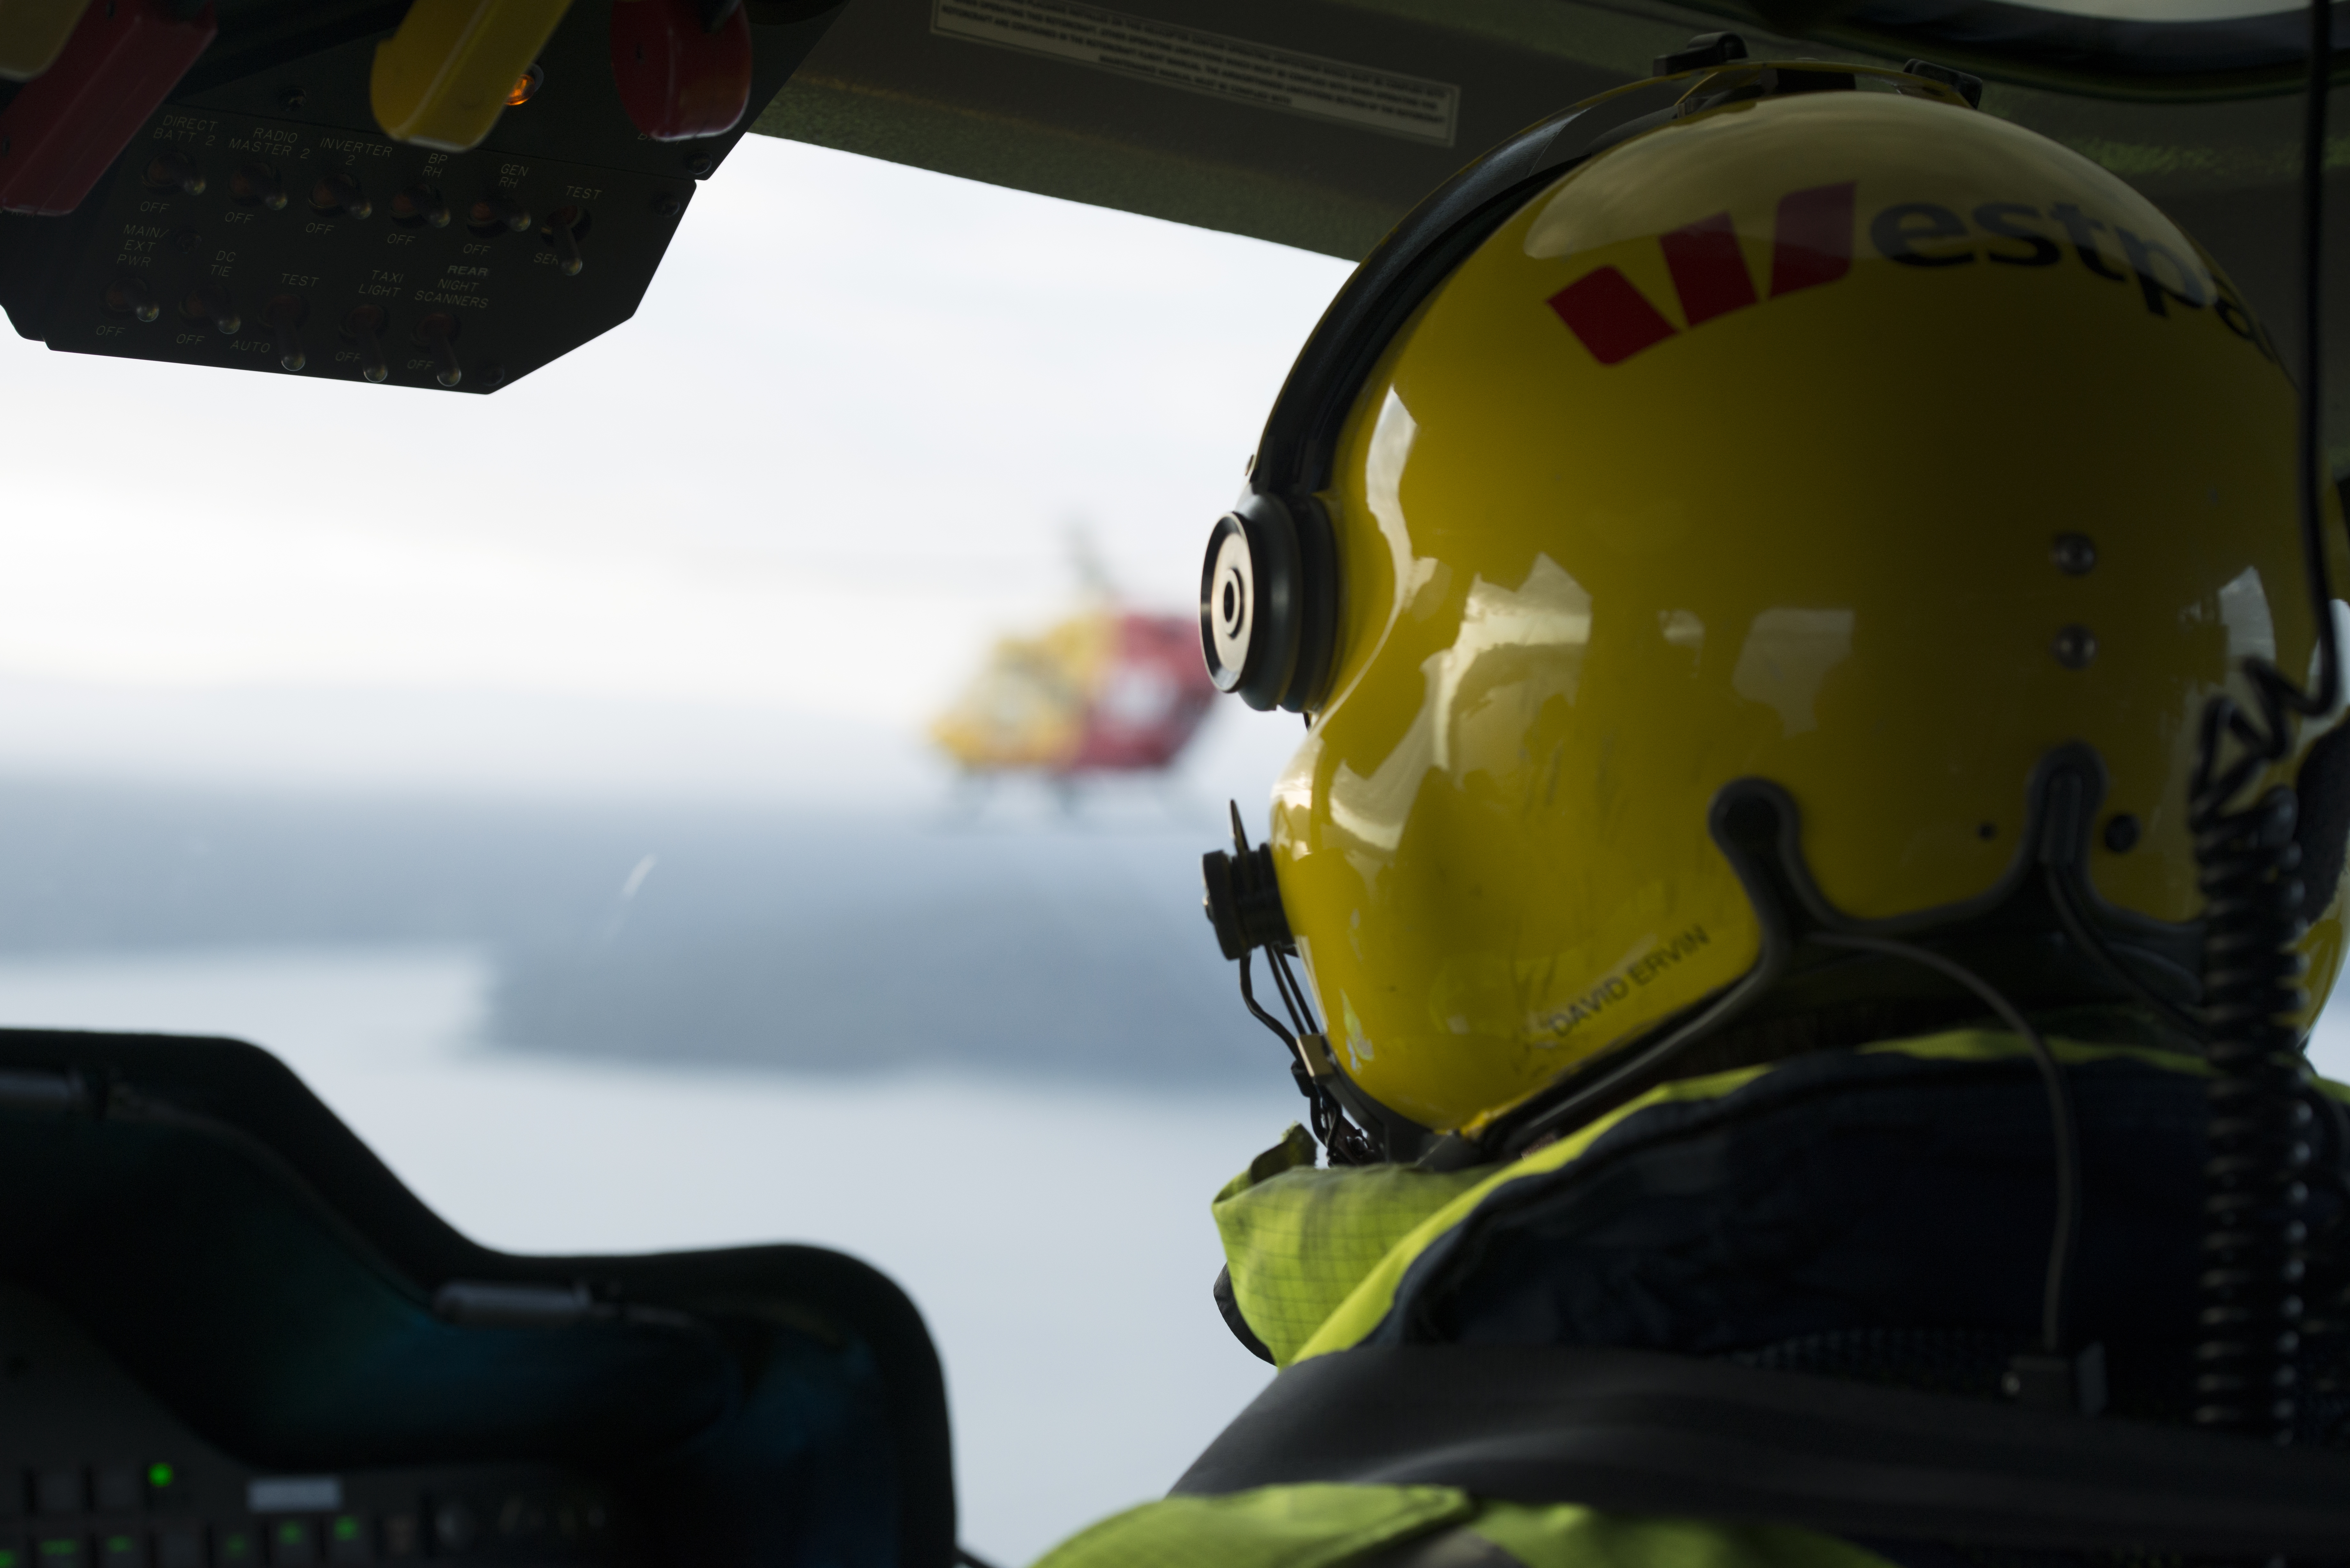 Westpac Rescue Helicopter Tasmania Chief Pilot Dave Ervin inflight